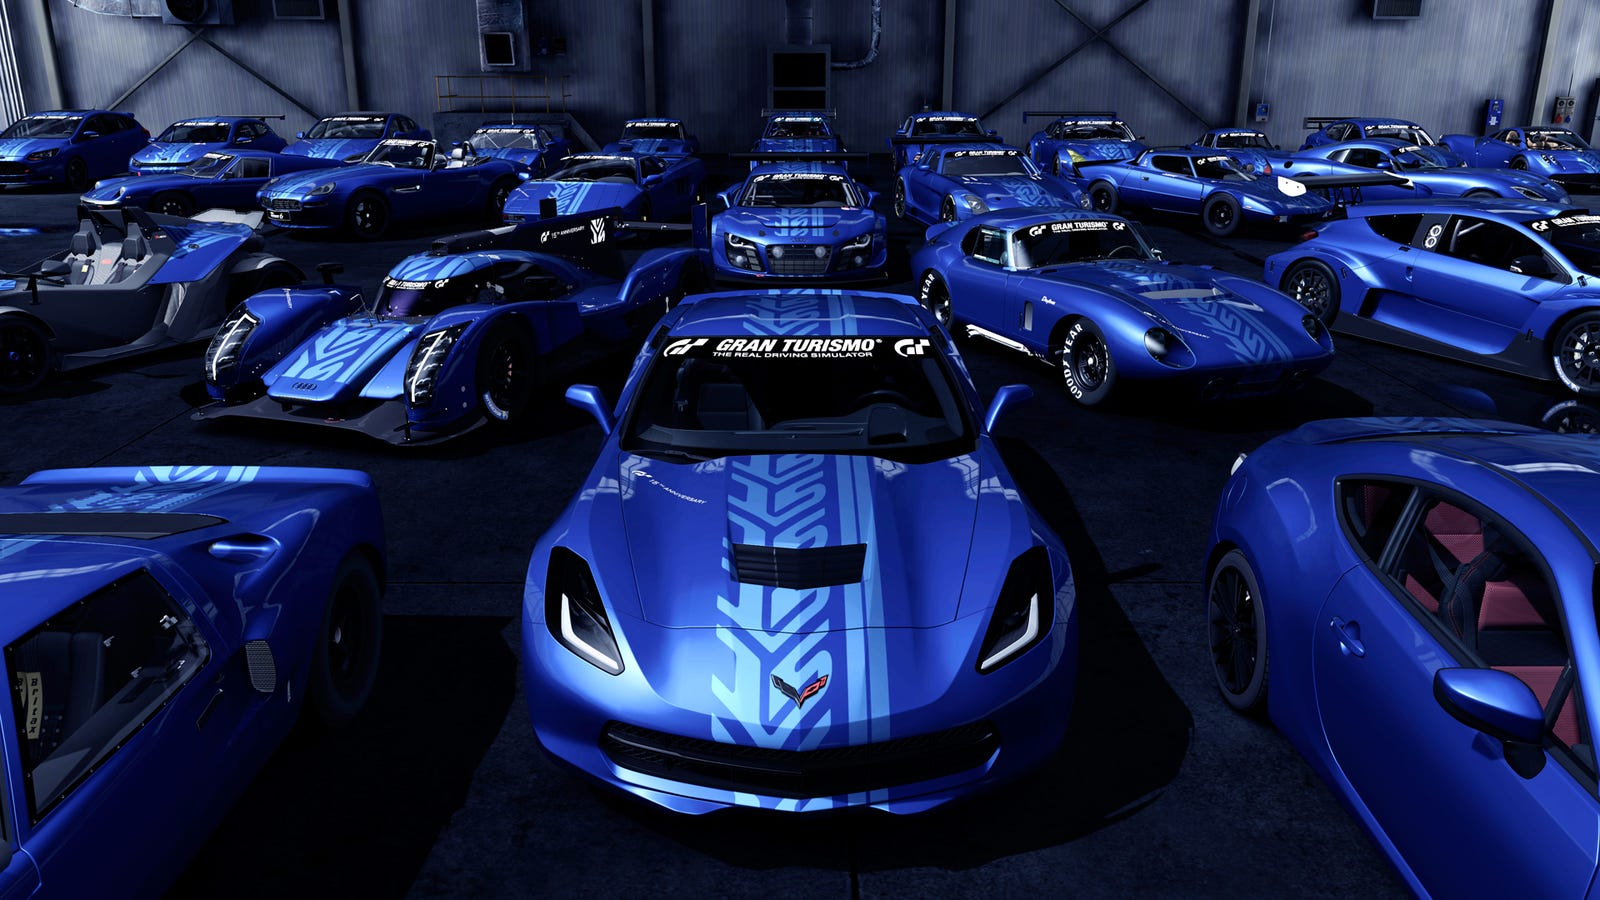 Turismo Car: The Best Cars From Gran Turismo 6